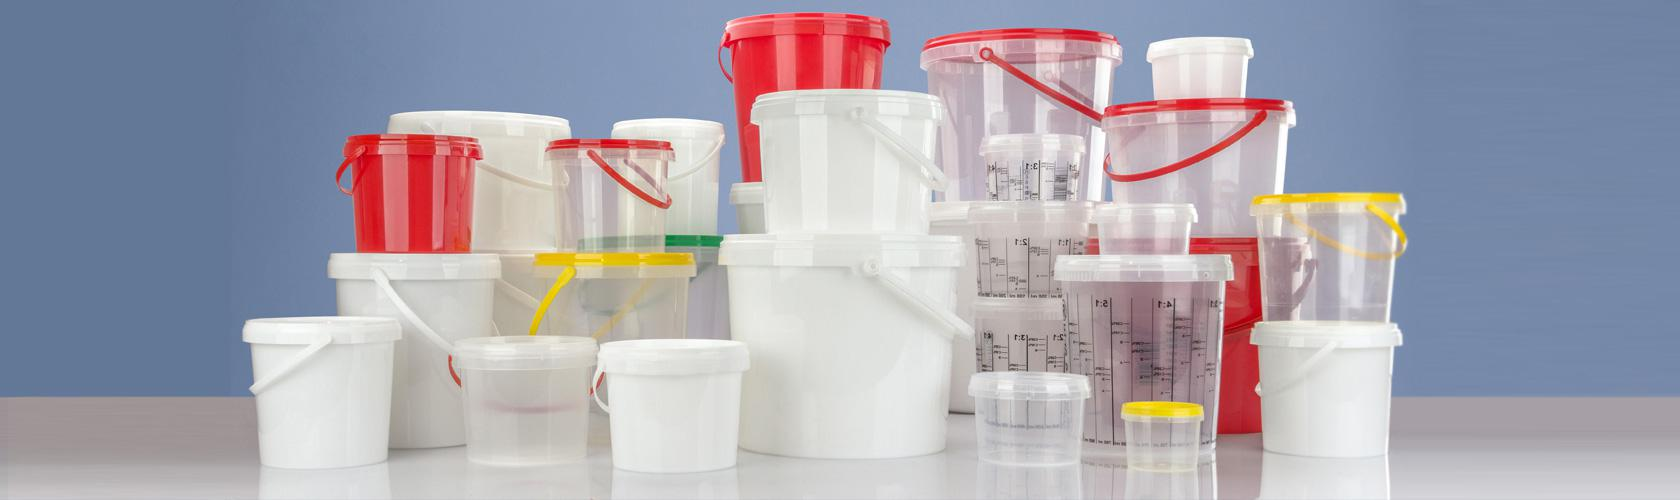 dds plast containers